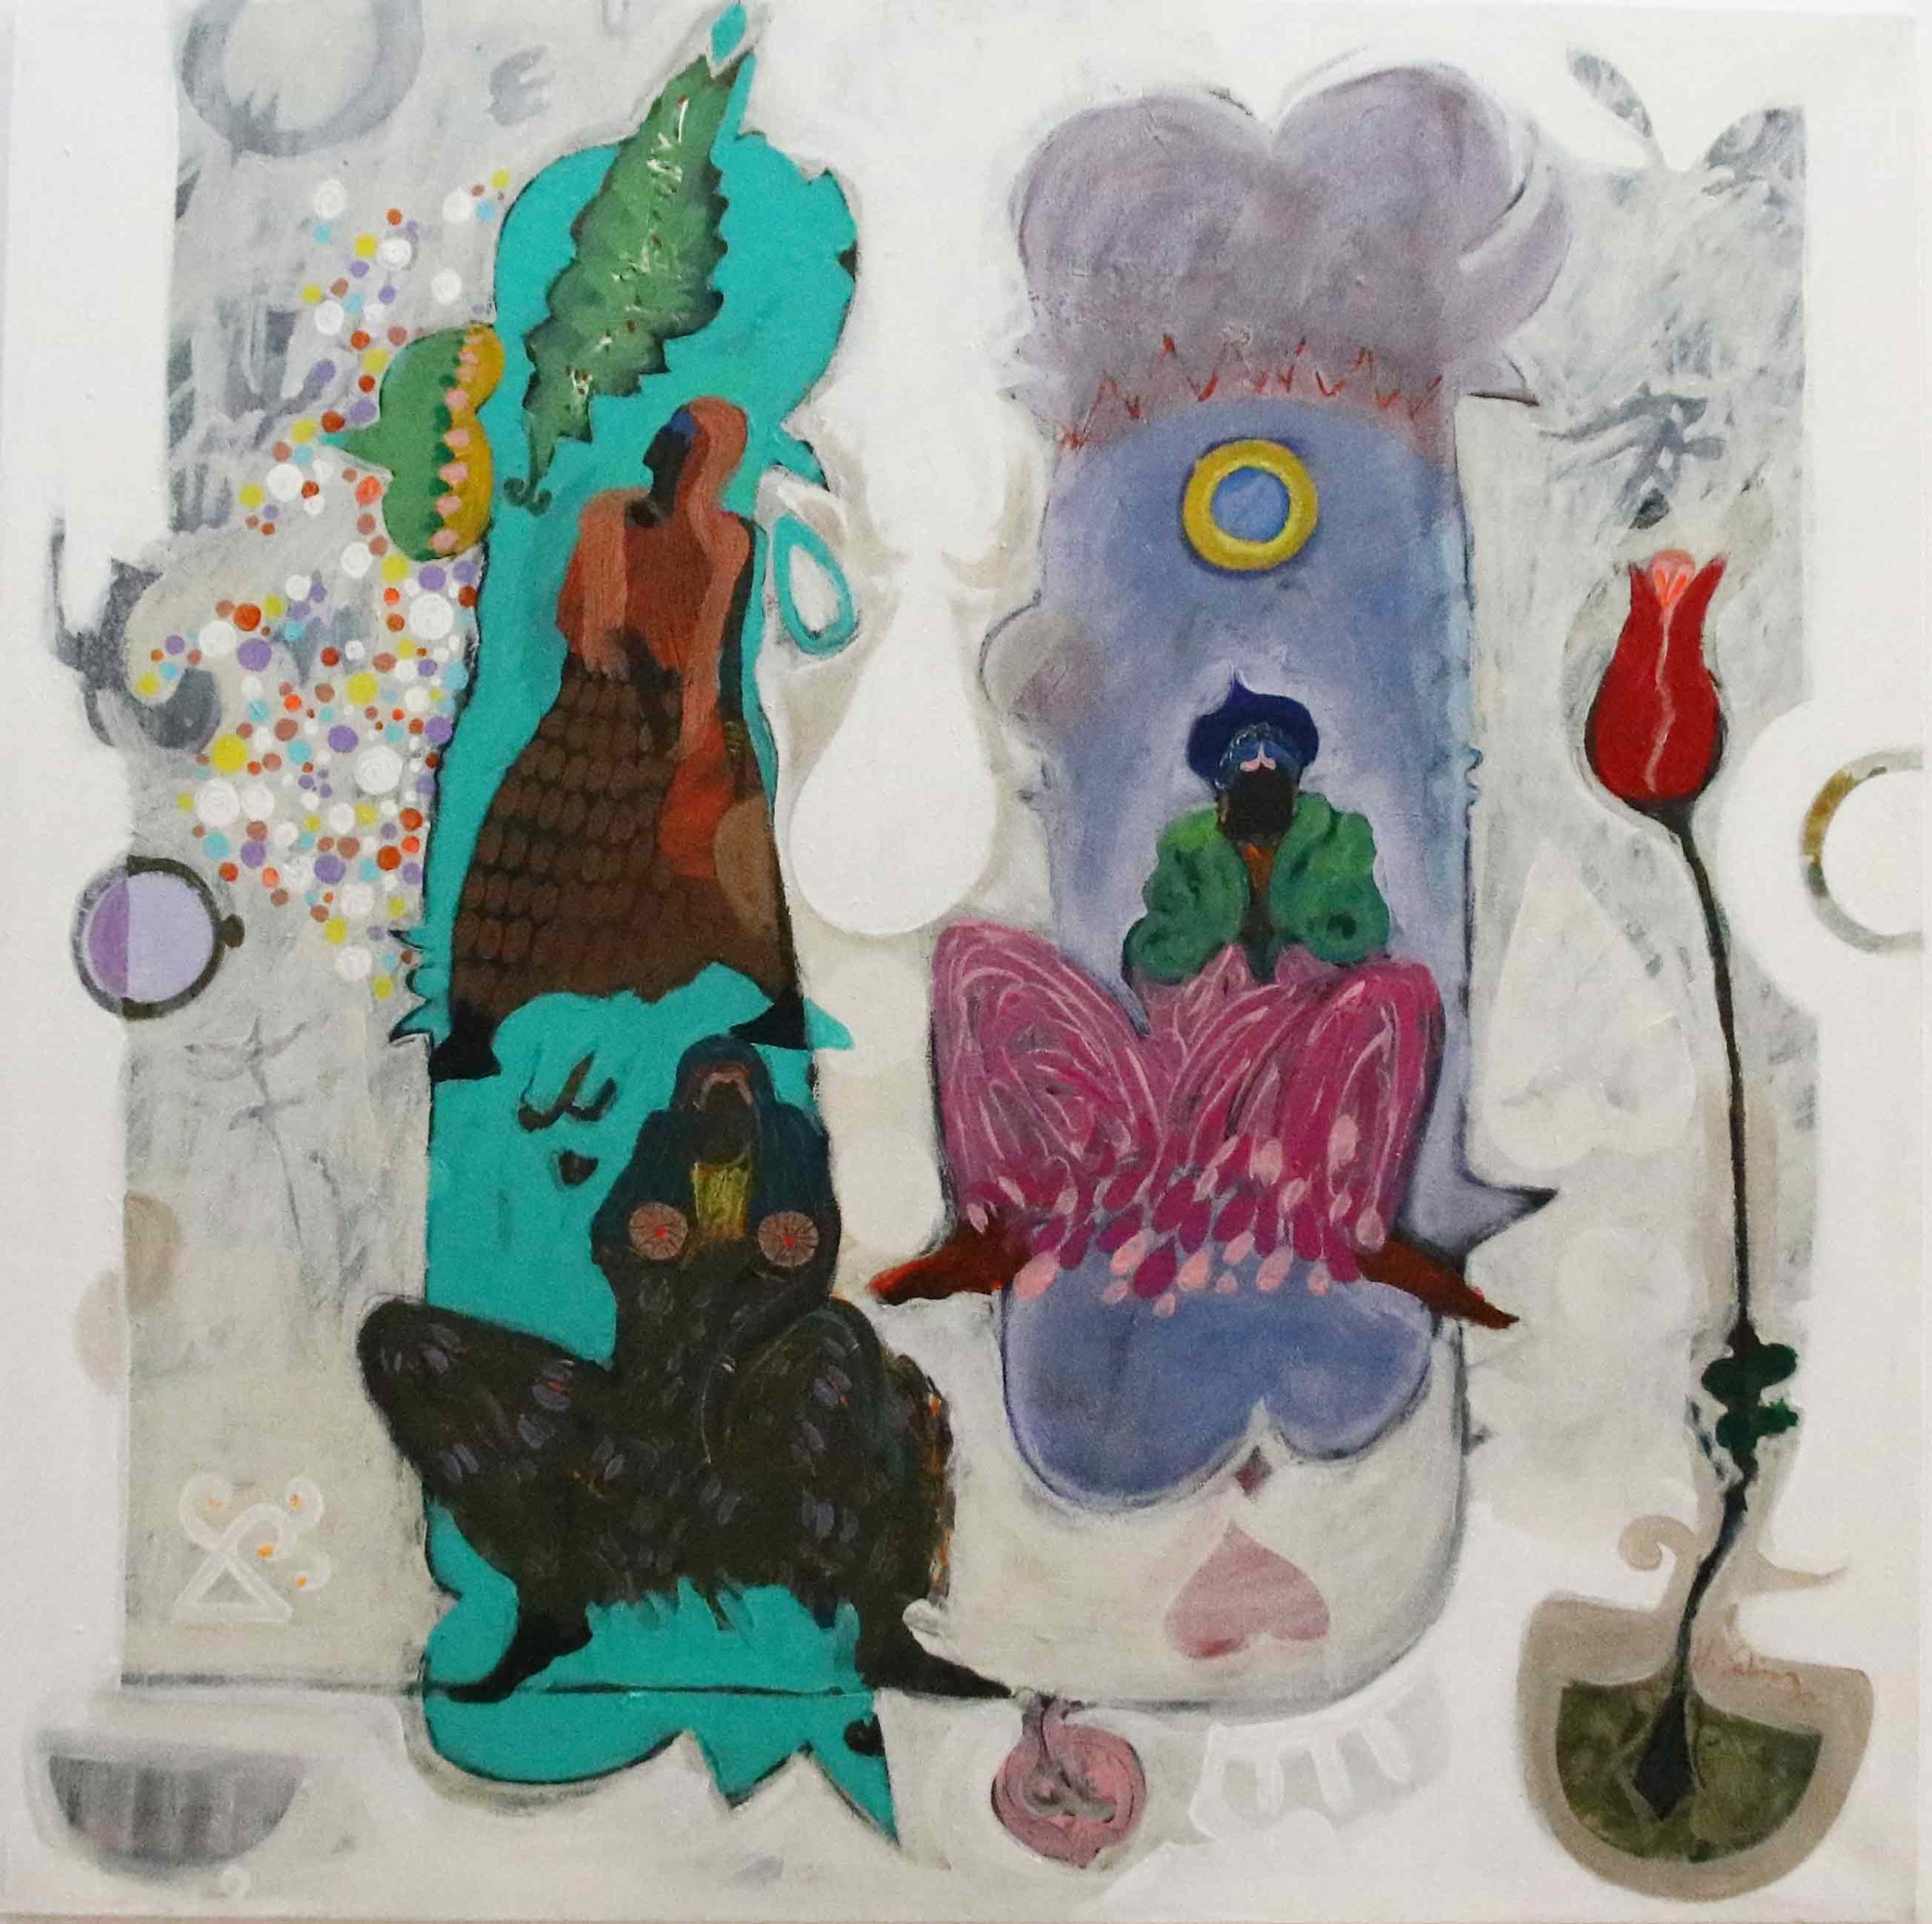 Hussein Salim   2020   Eclectica Contemporary   Gallery   Cape Town  